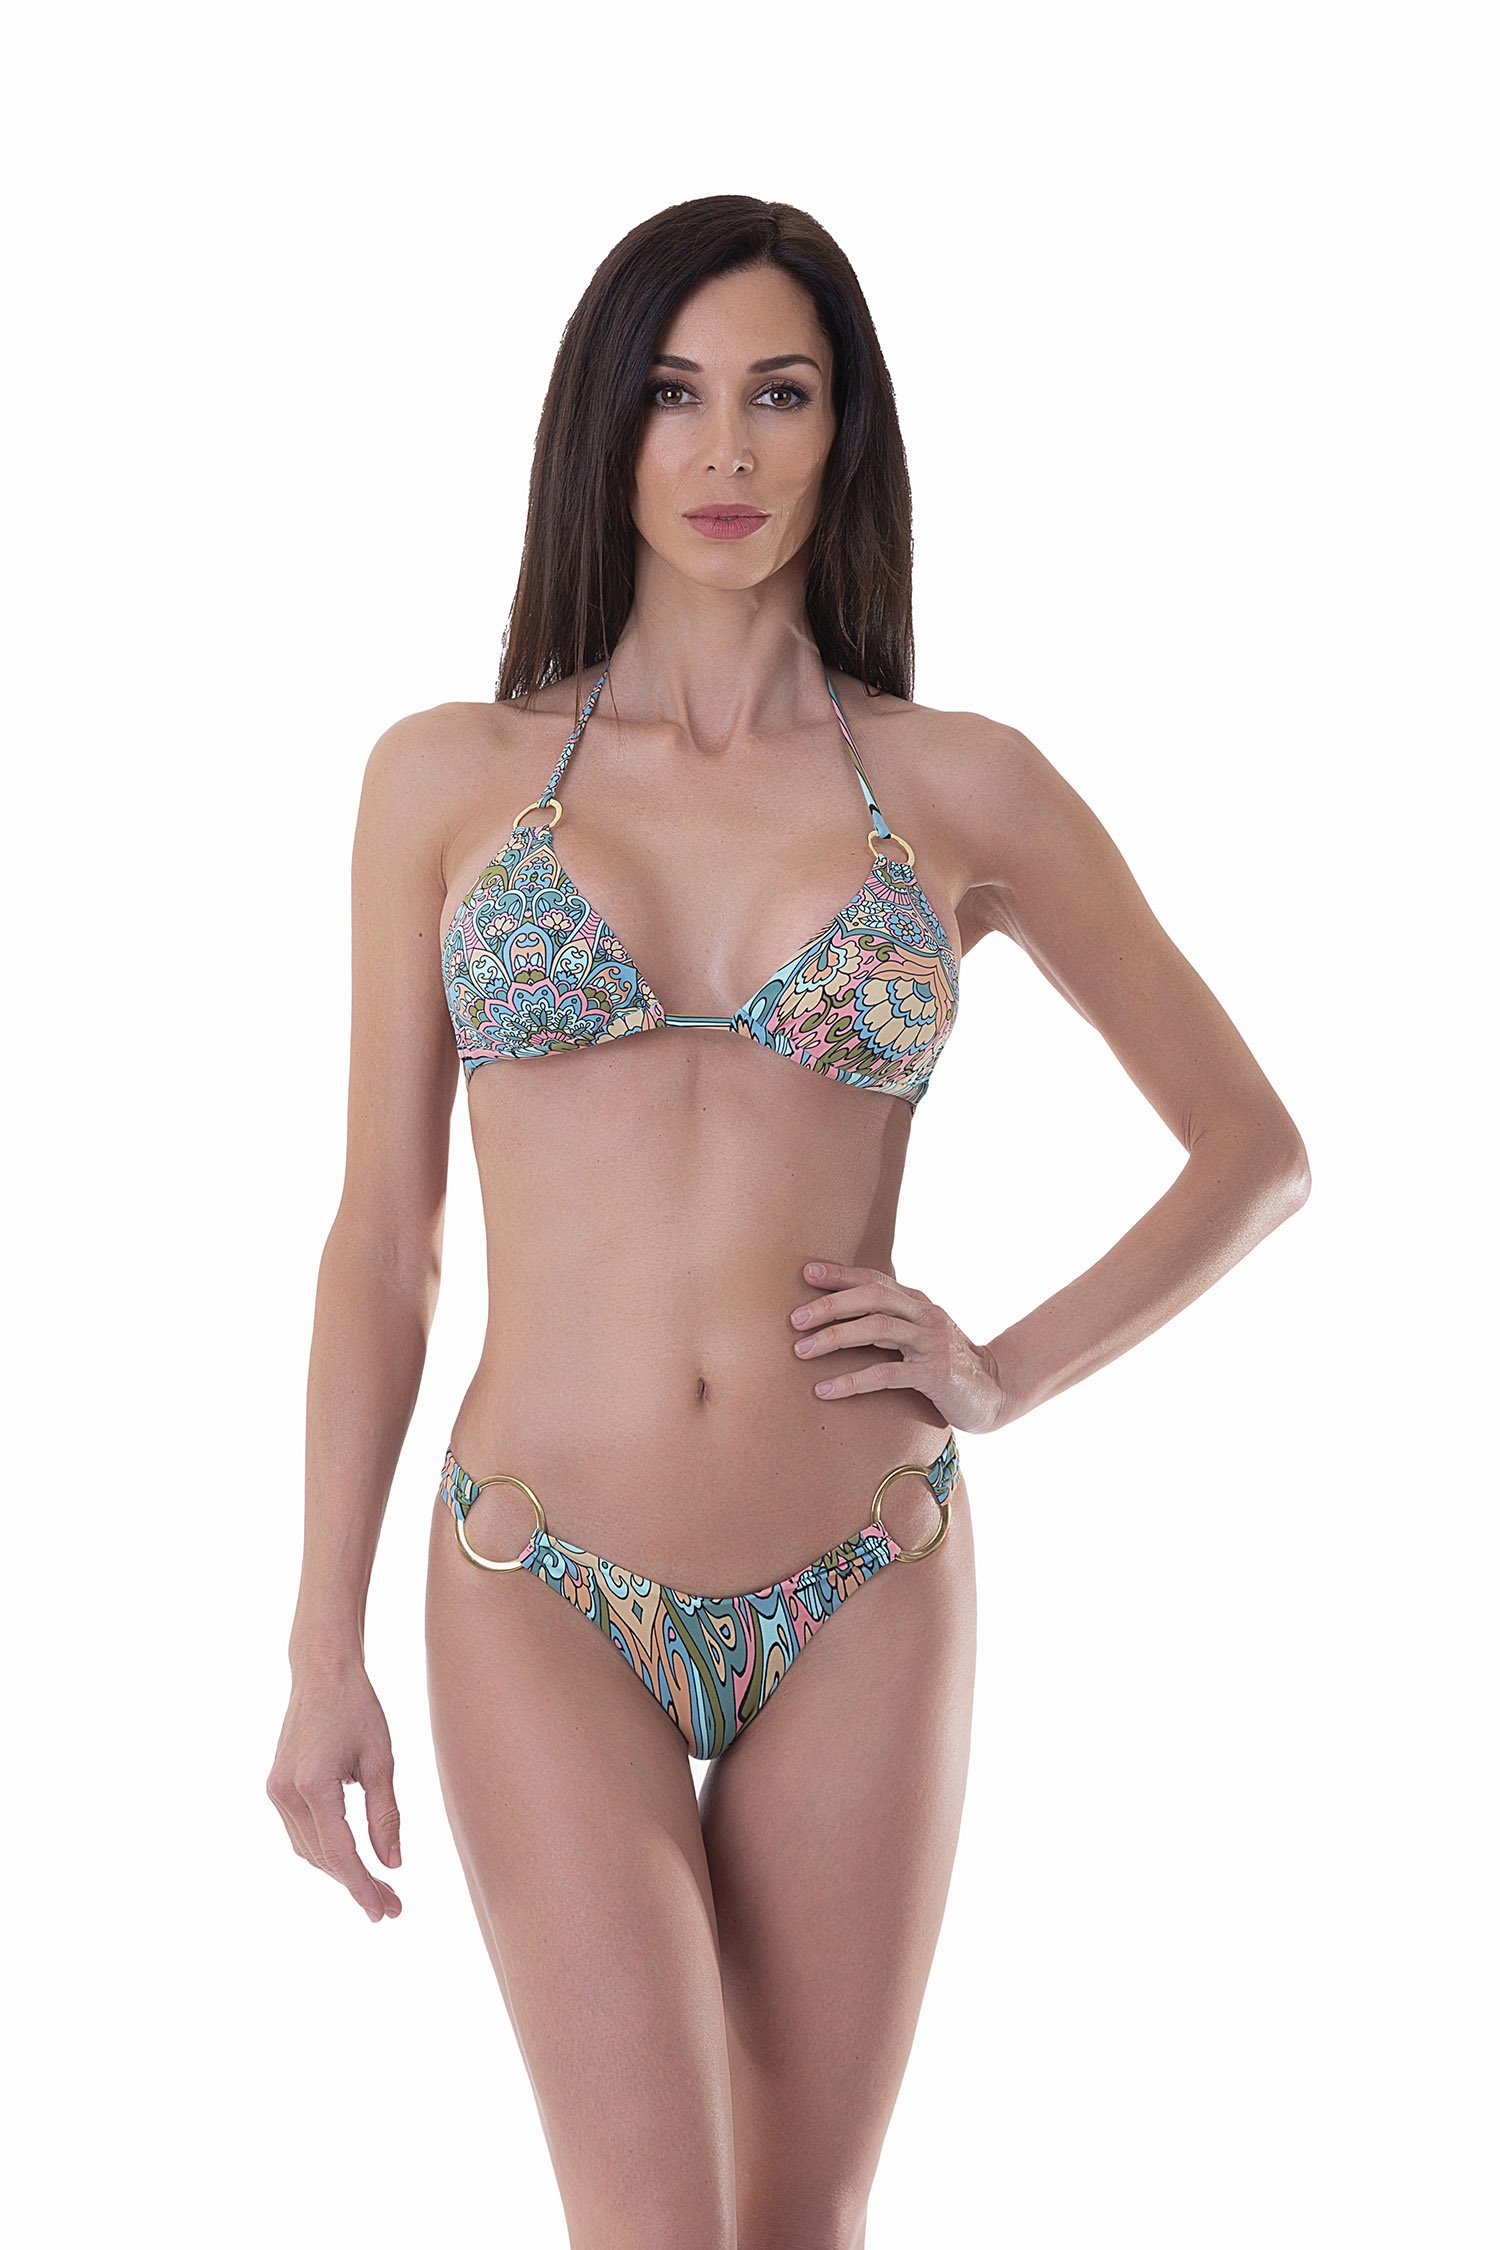 PRINTED TRIANGLE BIKINI WITH RINGS - Mandala Azzurro